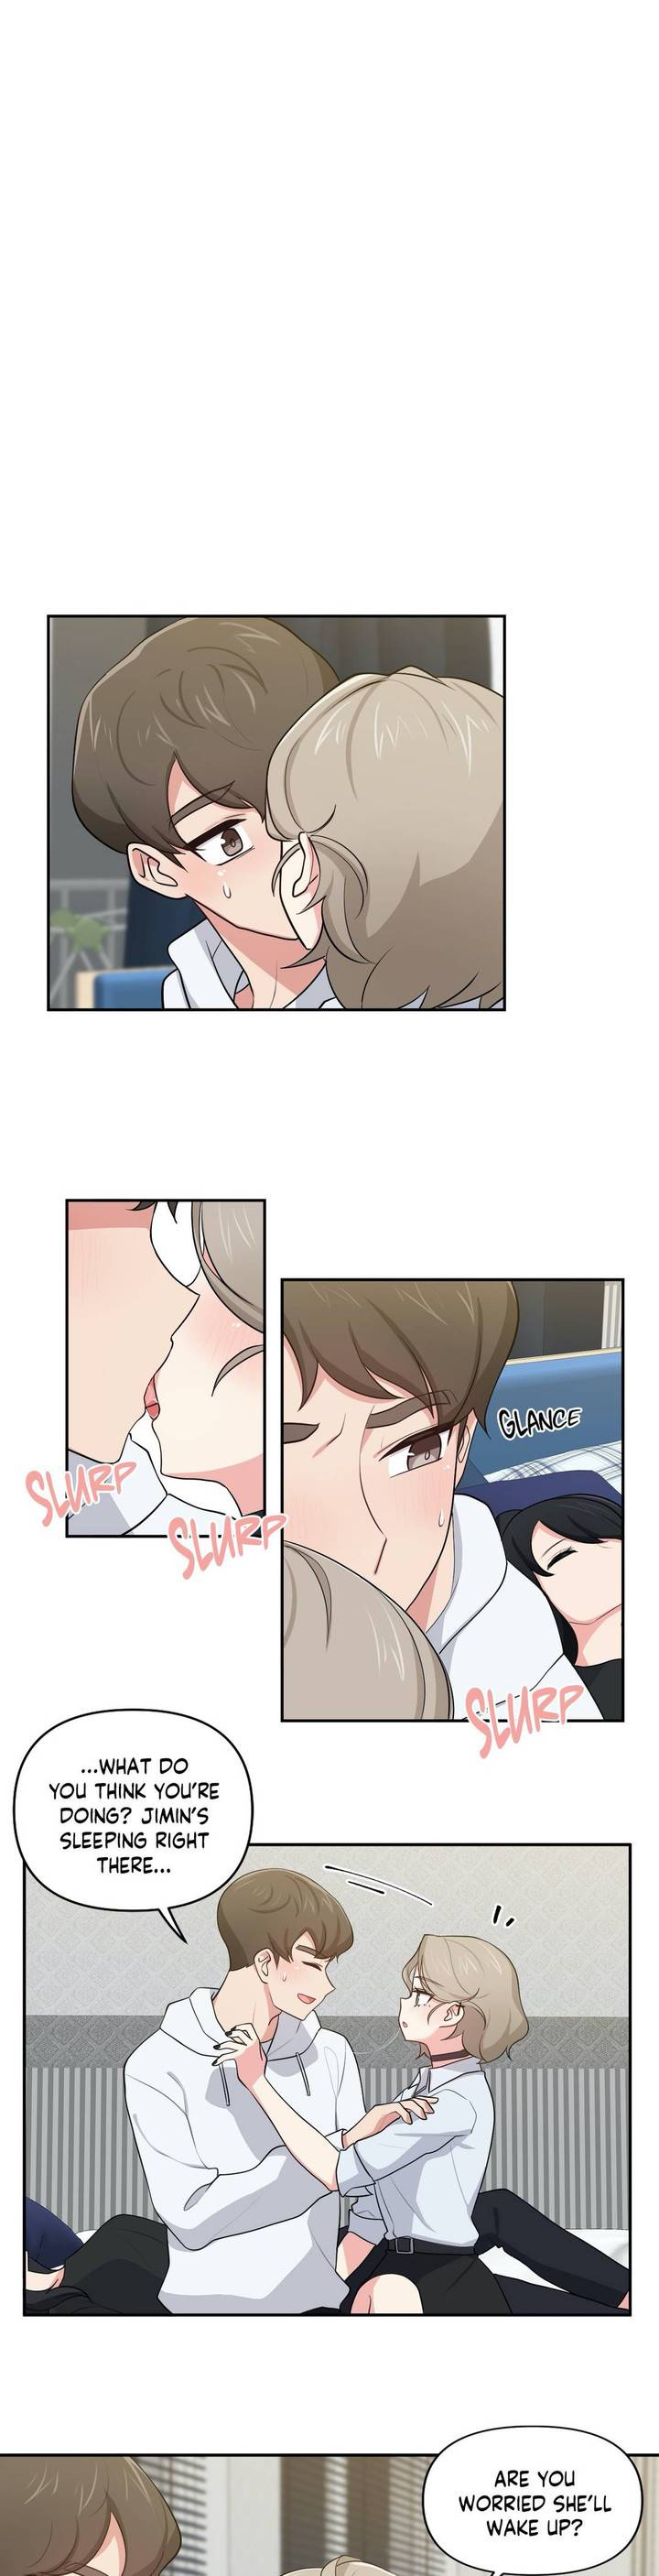 Friends or F-Buddies - chapter 18 - #1